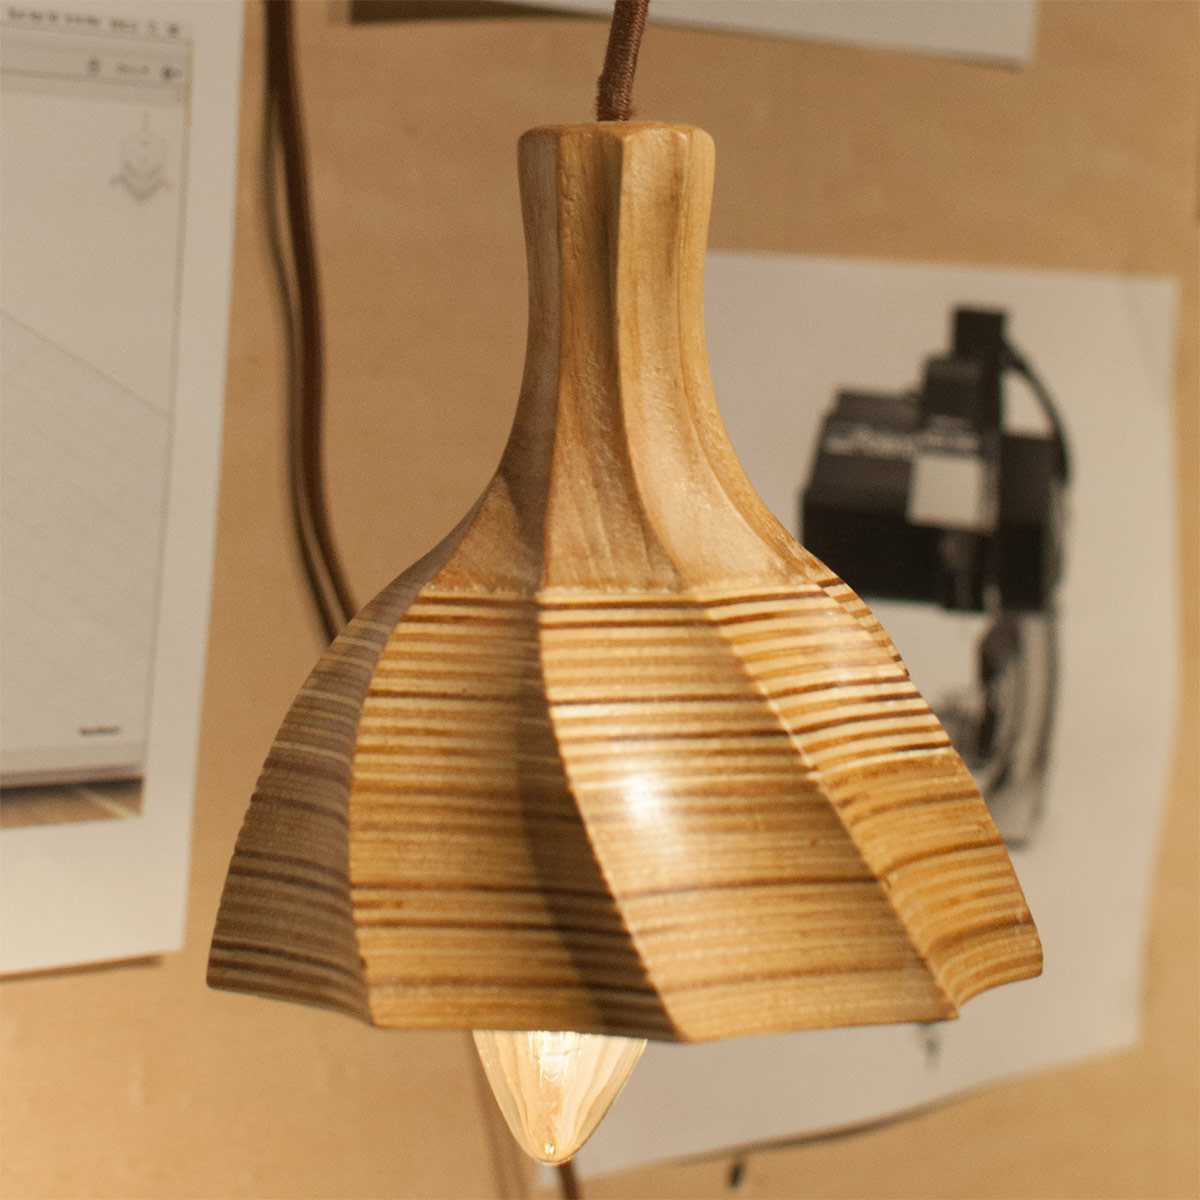 a spiraled wooden lamp shade